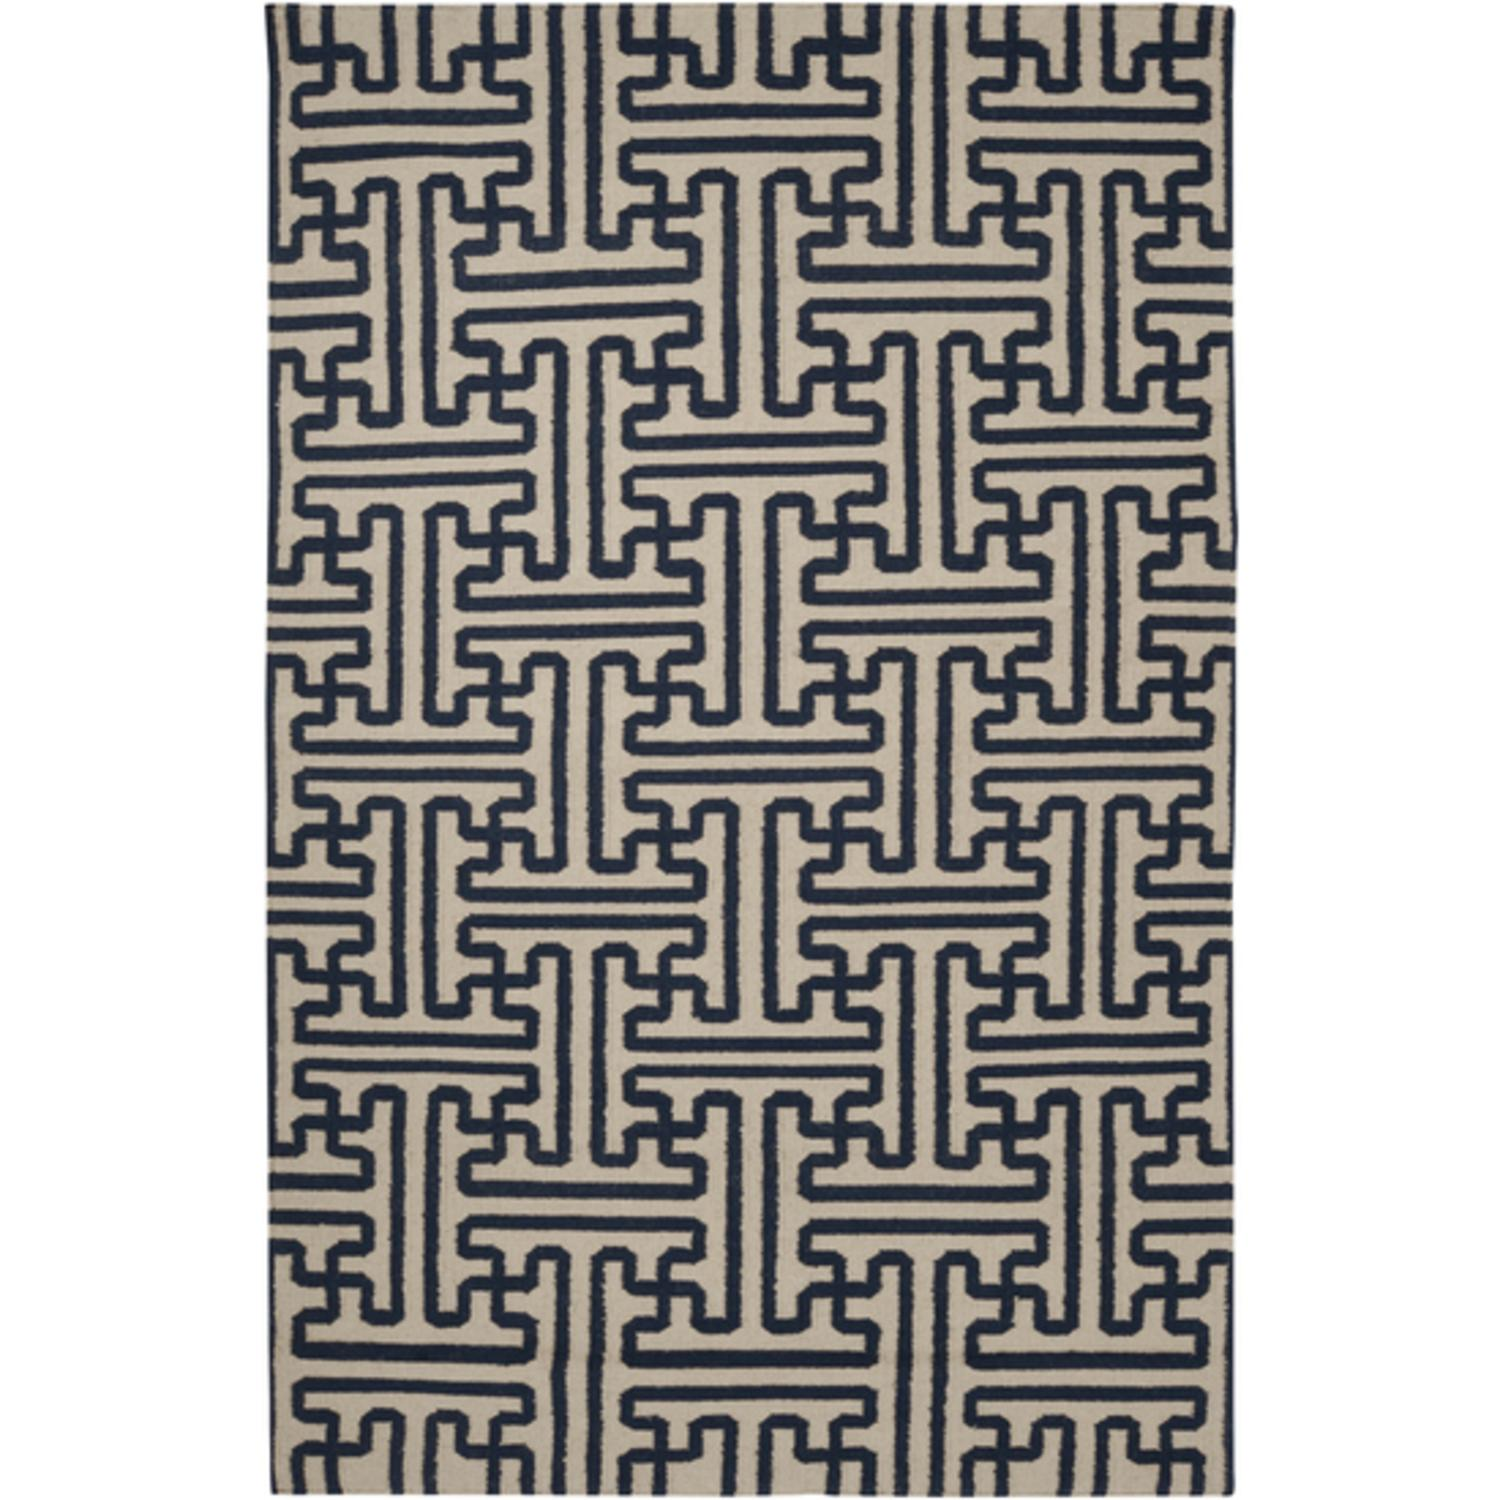 5' x 8' Block Pillars Mossy Gold and Dark Slate Blue Wool Area Throw Rug